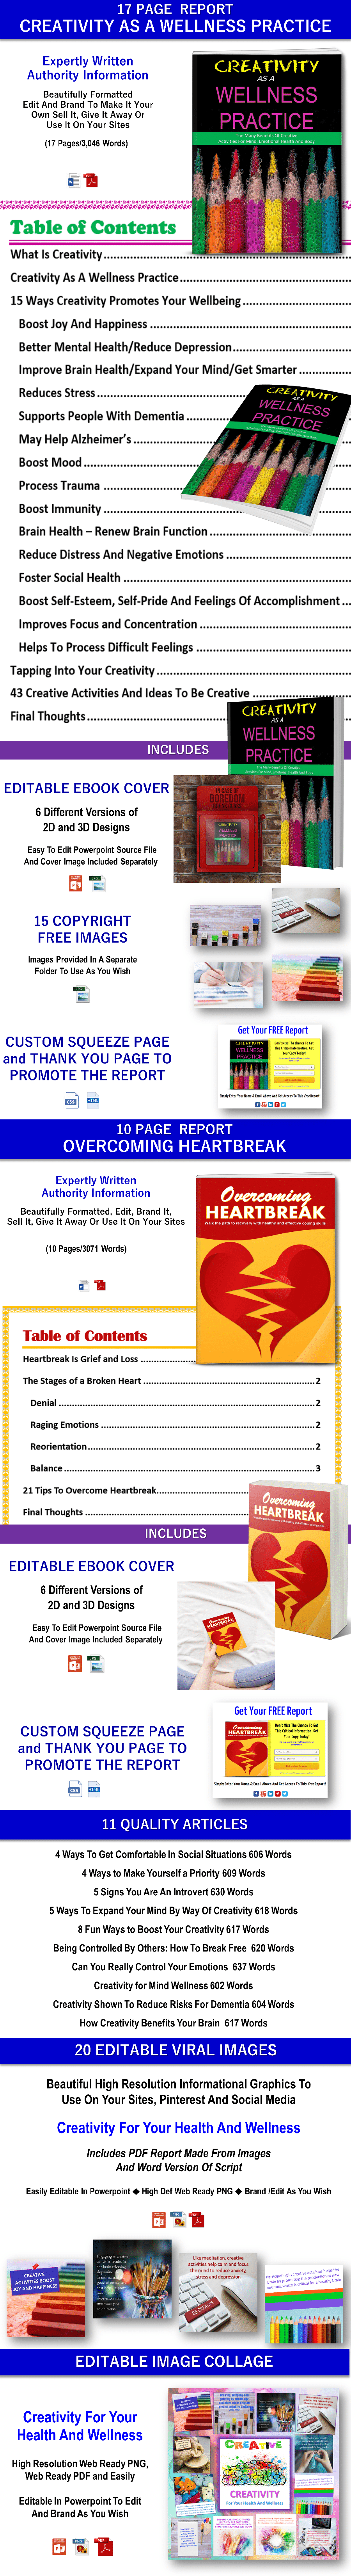 Creativity as a Wellness Practice and overcoming Heartbreak content plr,